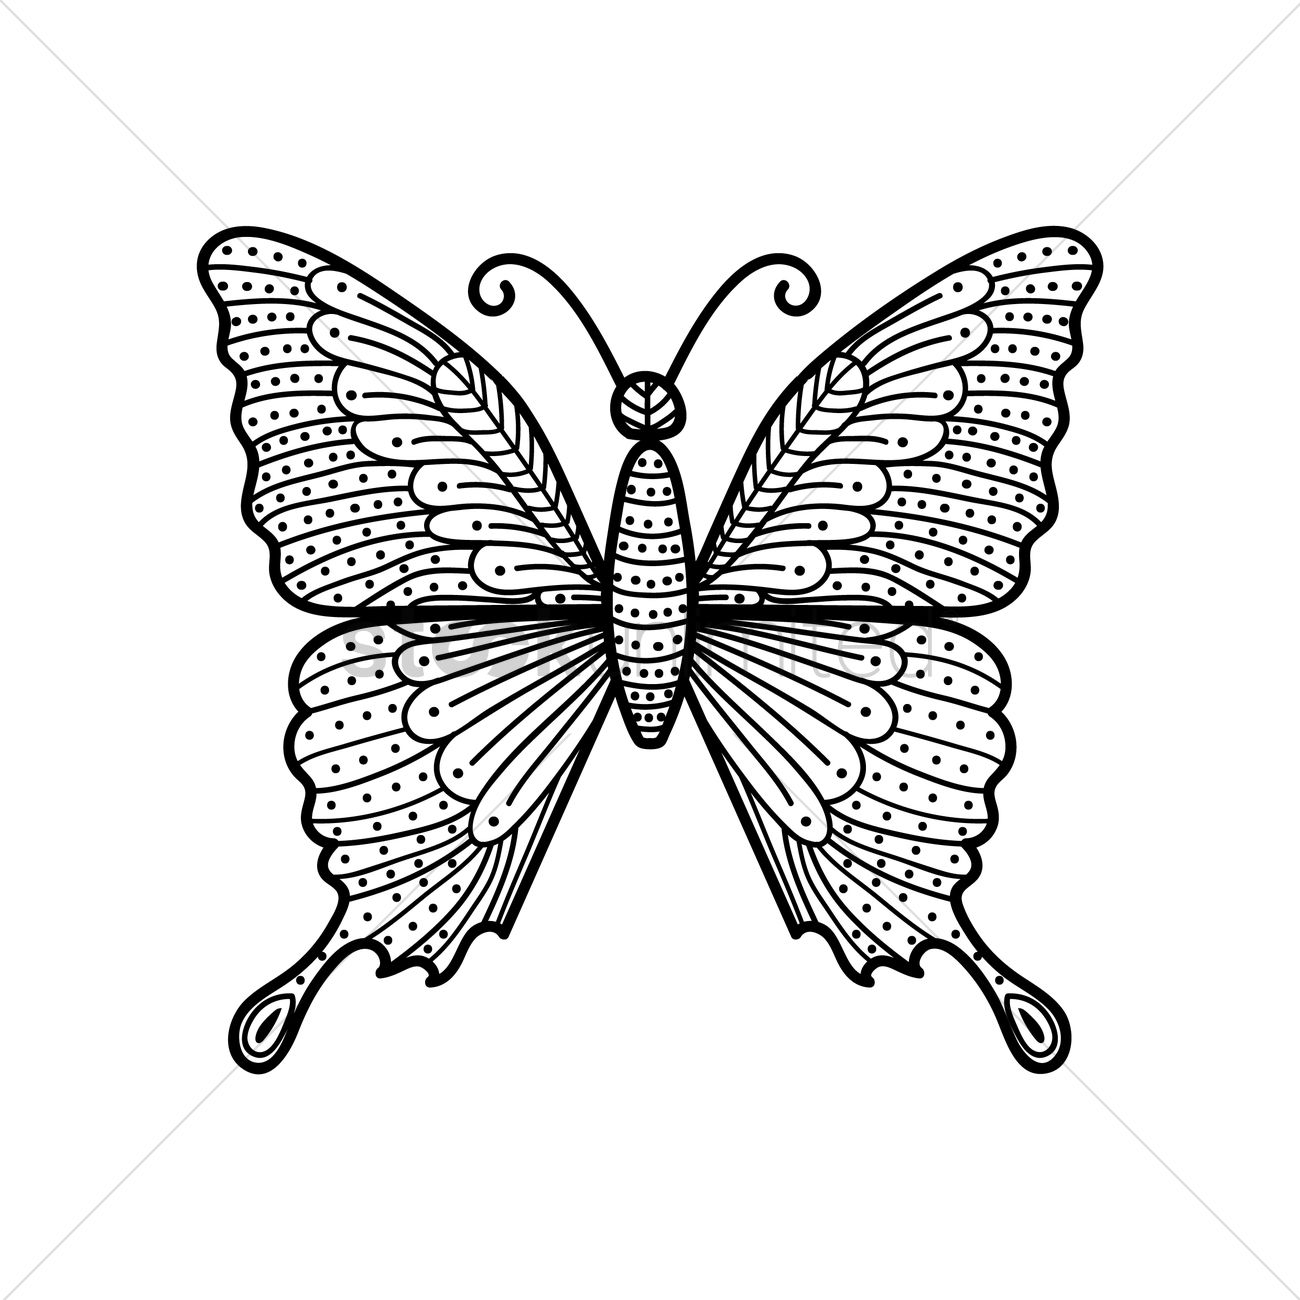 Butterfly Monochrome Design Vector Image 1544039